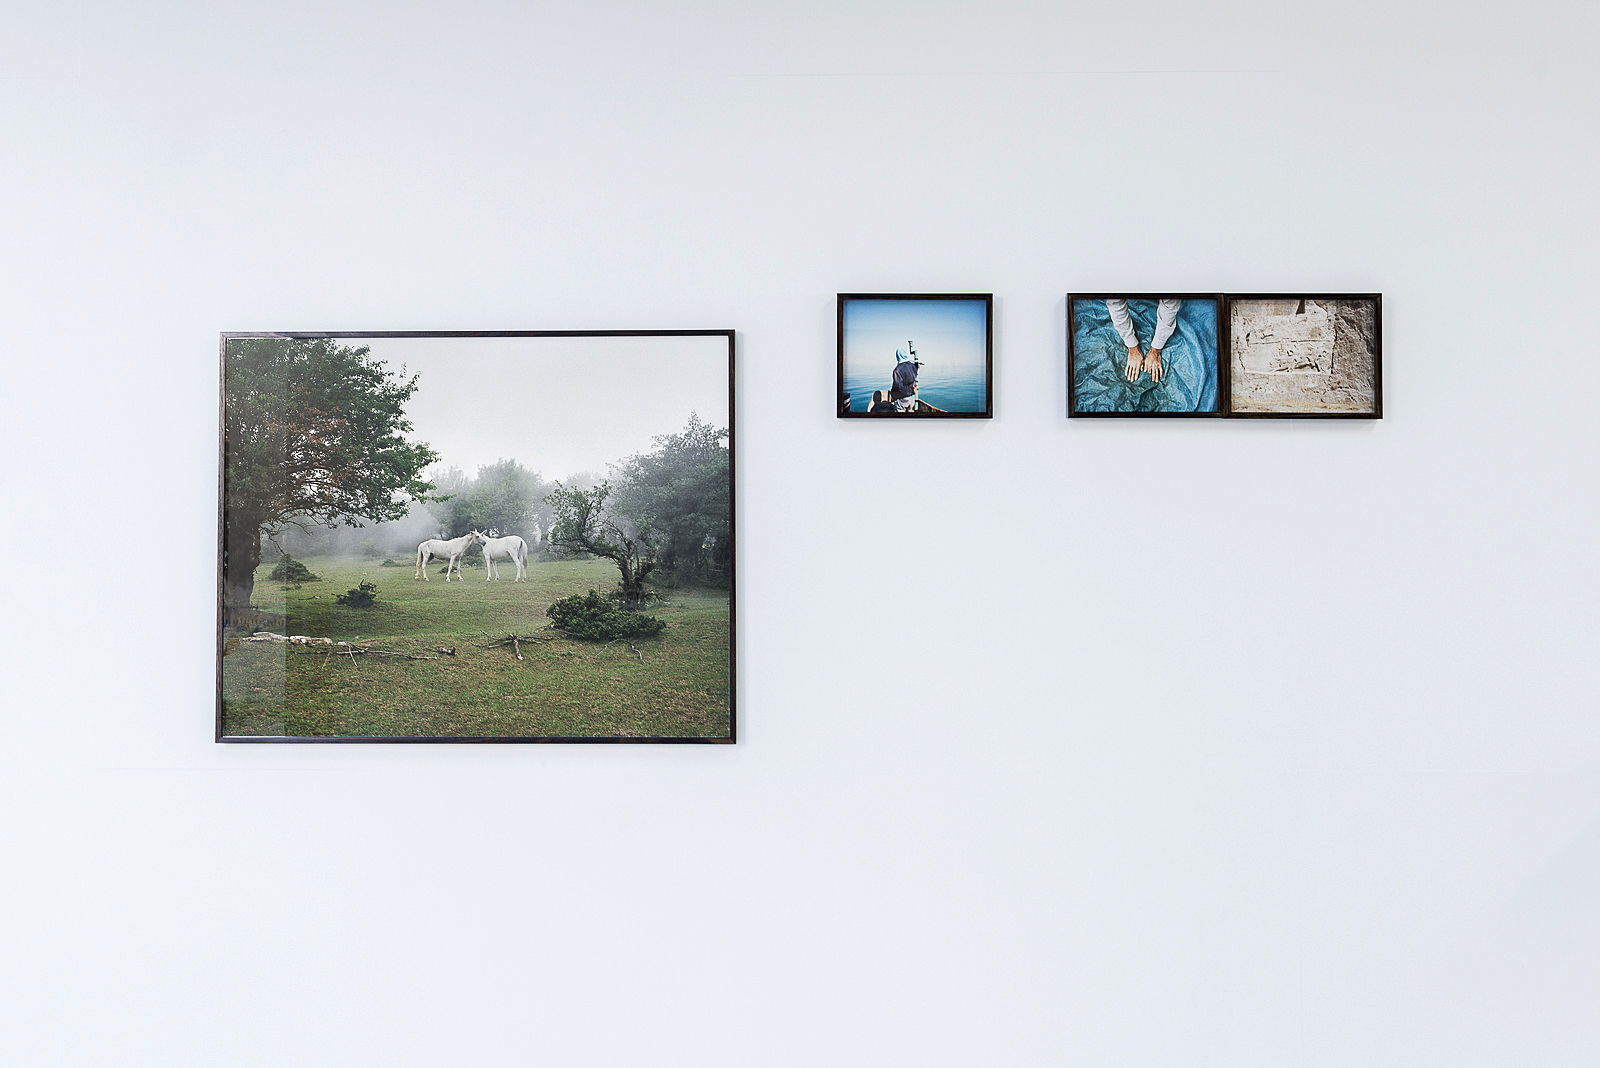 180420_The Inner Apartment exhibition_Rohan Thomson_Image 26